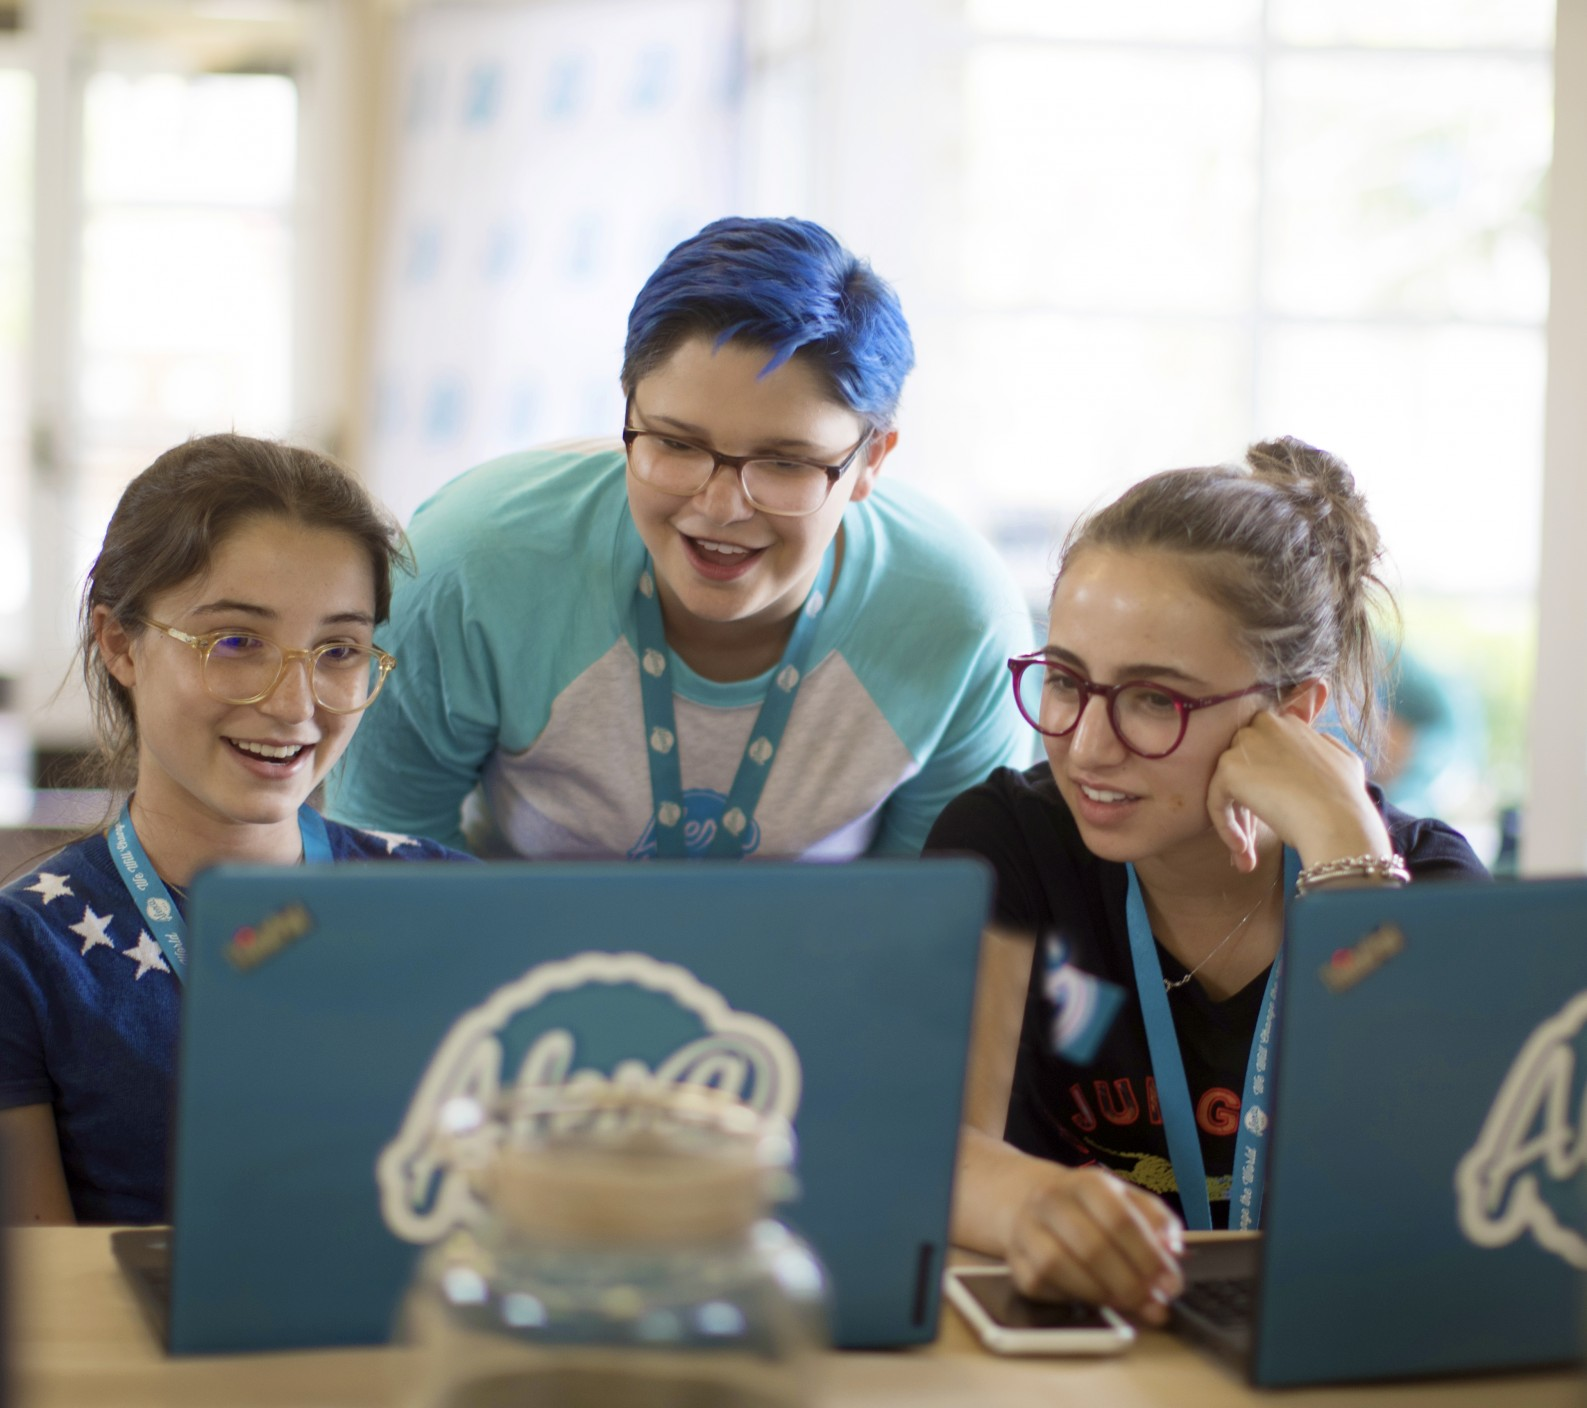 Summer Program - Mathematics | Alexa Cafe: All-Girls STEM Camp | Held at UC Berkeley